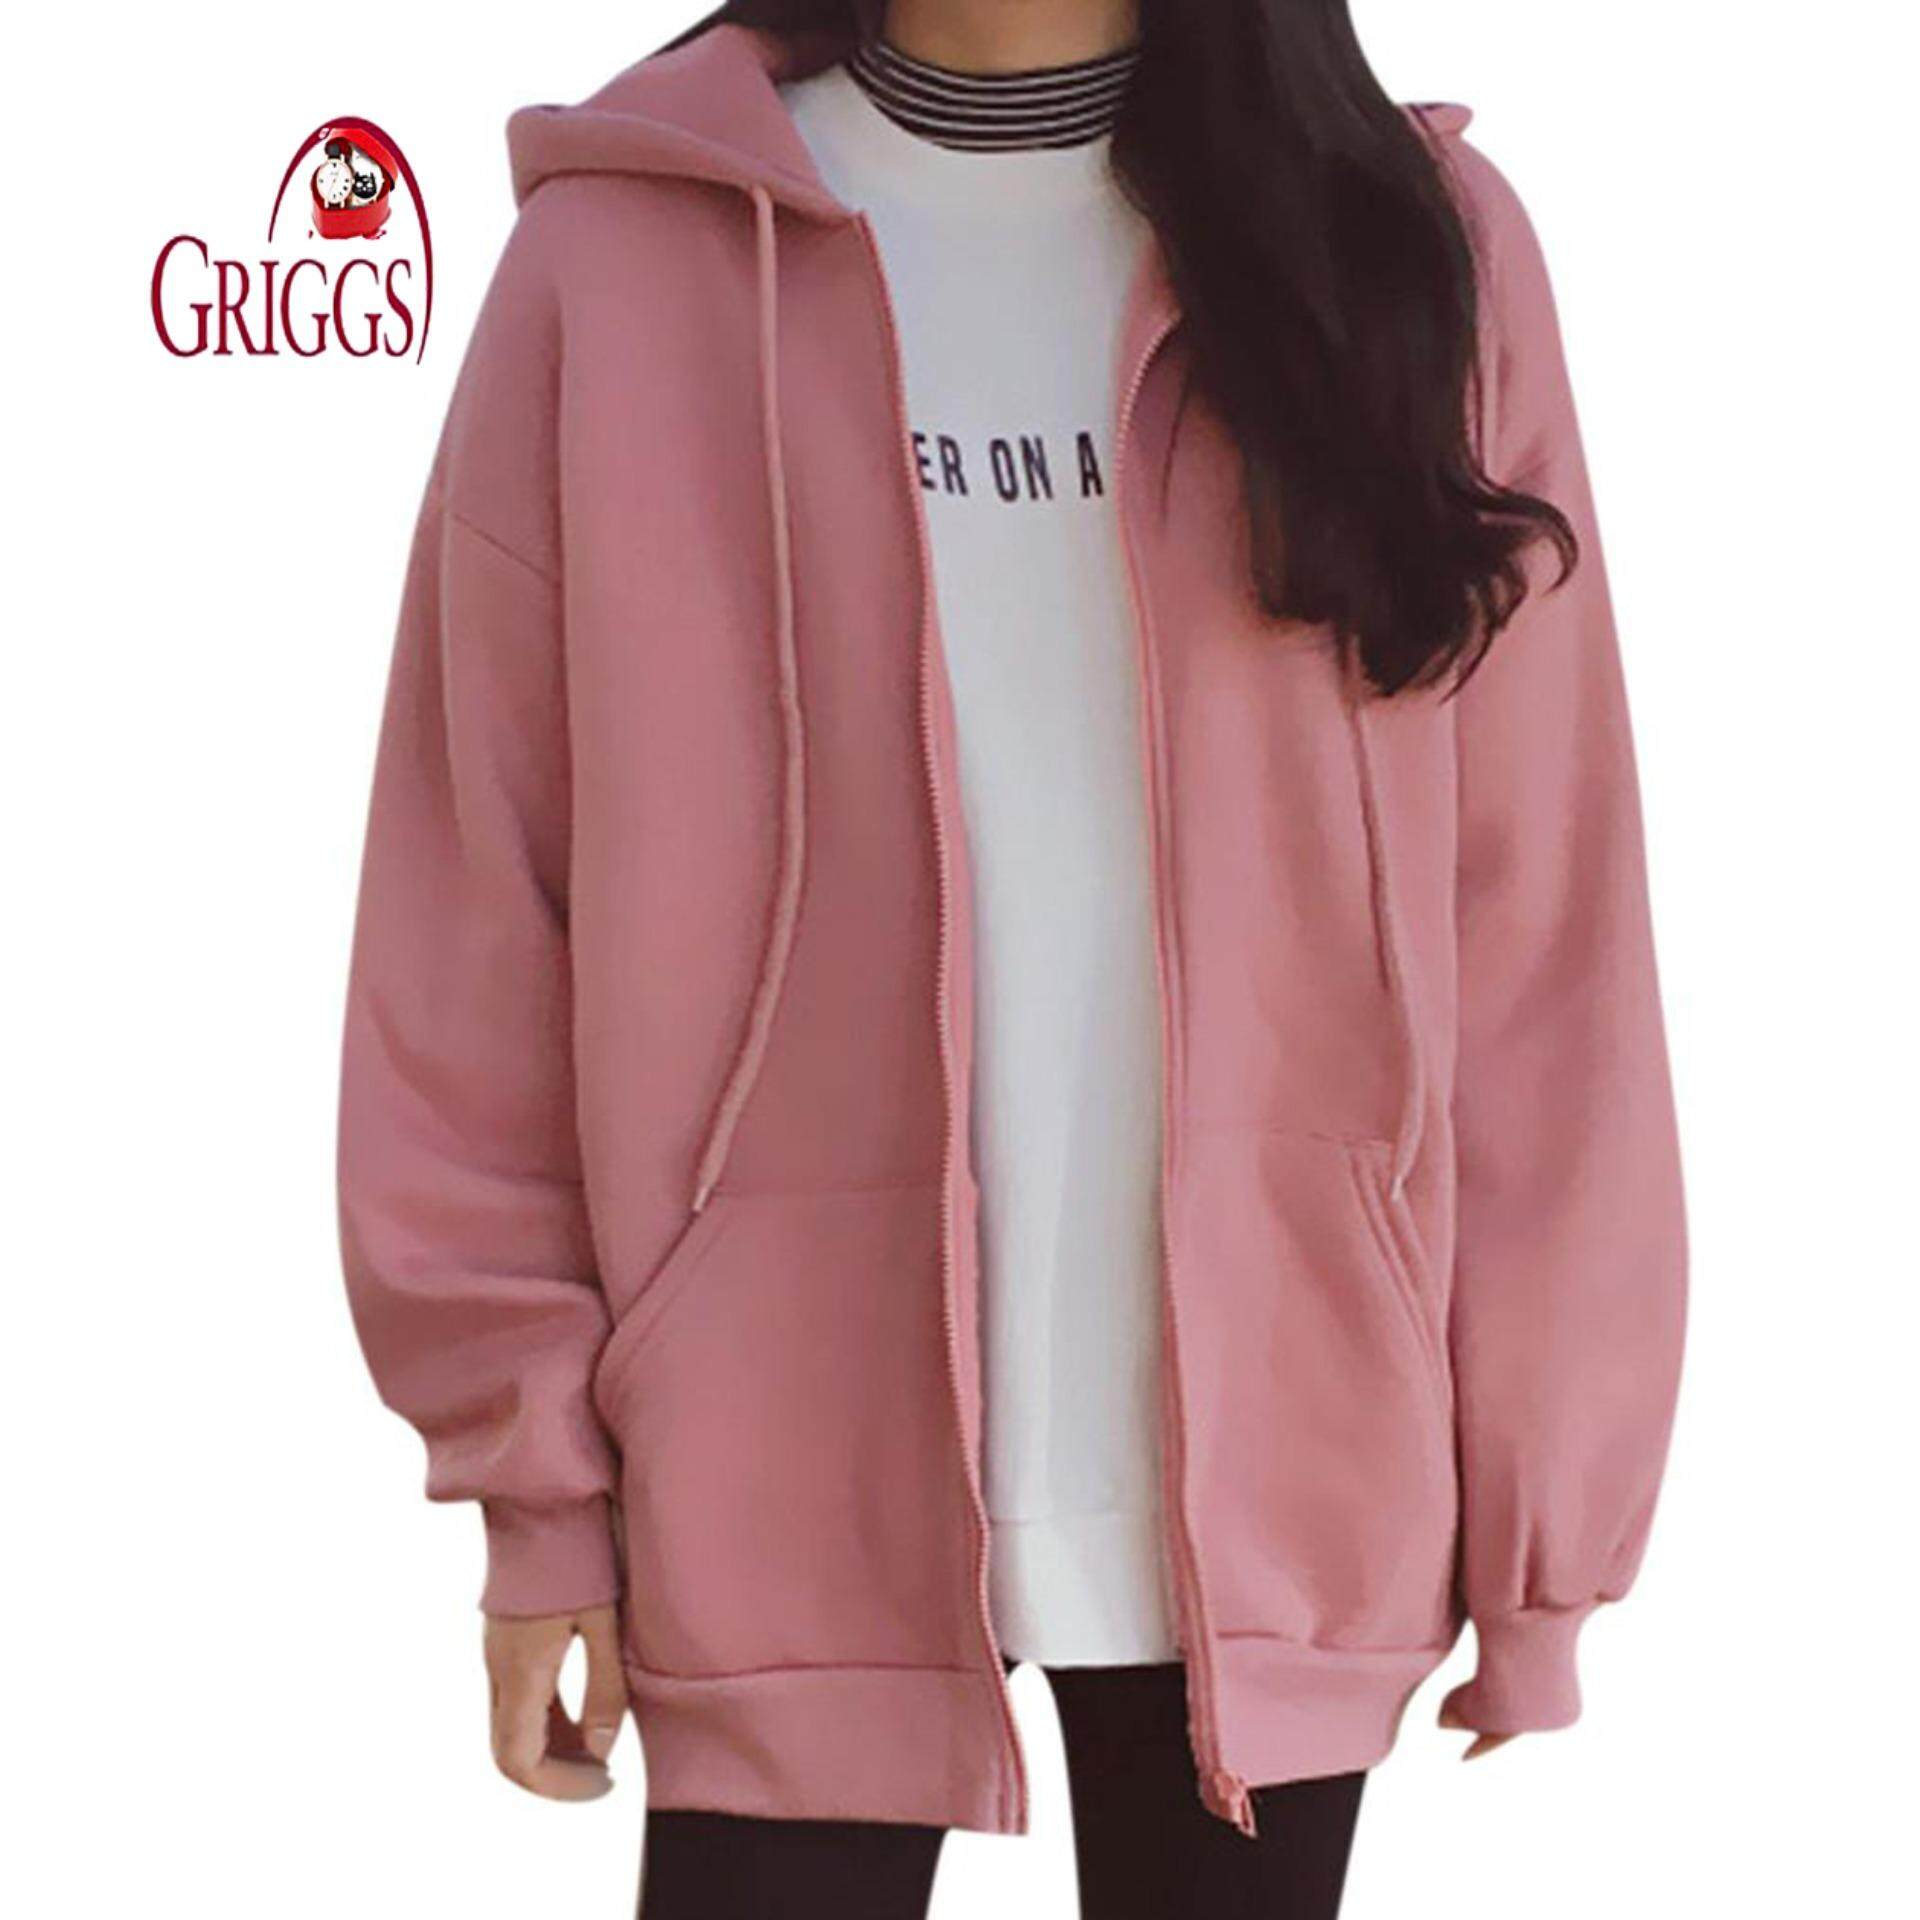 005e0a36d Buy Jackets & Coats at Best Prices Online in Malaysia | Lazada.com.my